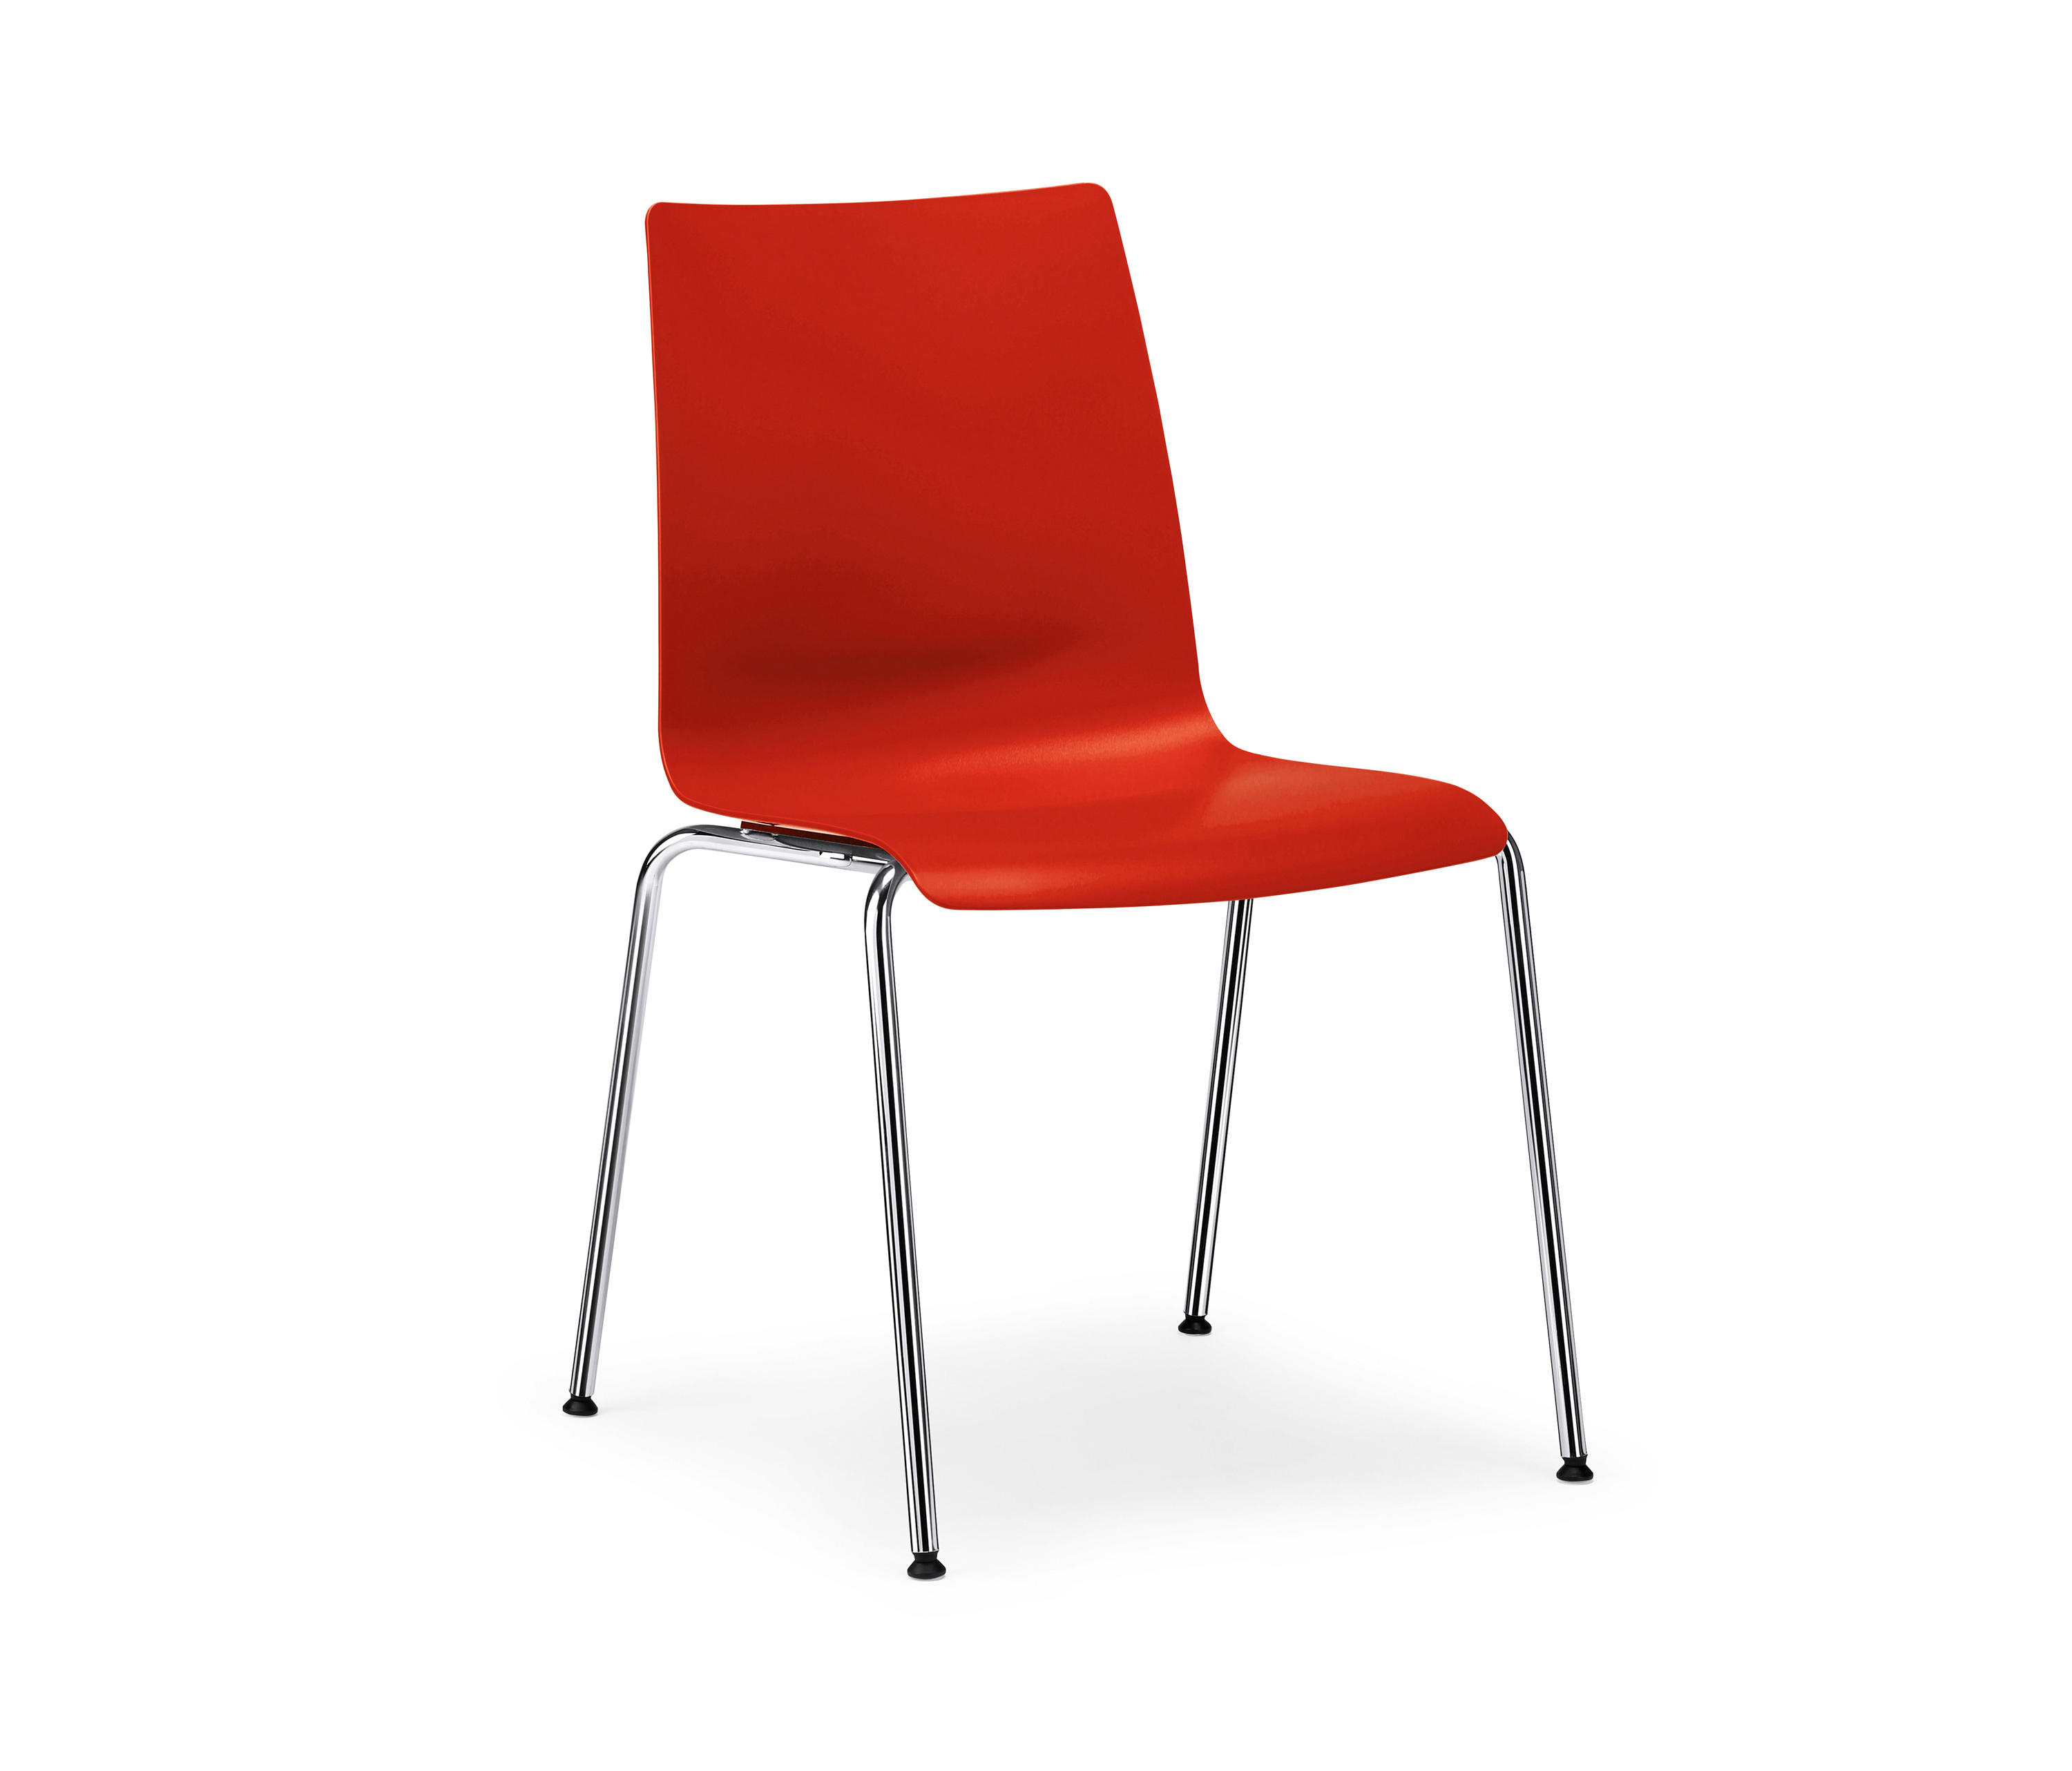 SNIKEIS1 S10C - Visitors chairs / Side chairs from Interstuhl ...